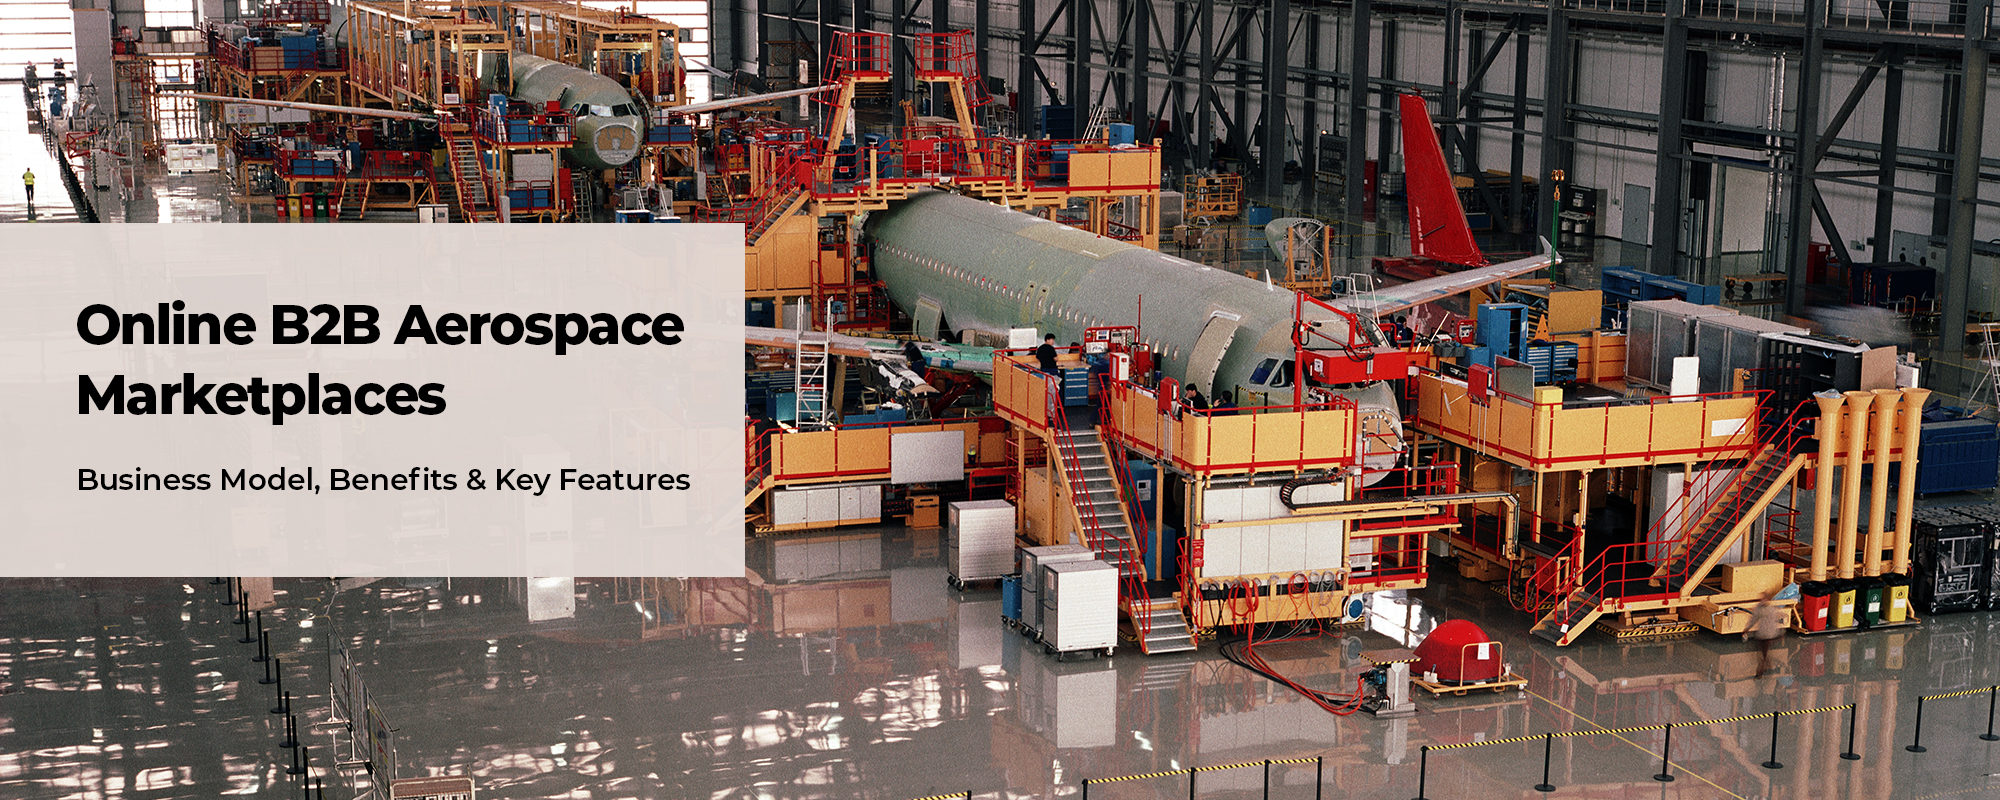 How Online B2B Marketplaces Can Redefine The Aerospace Industry